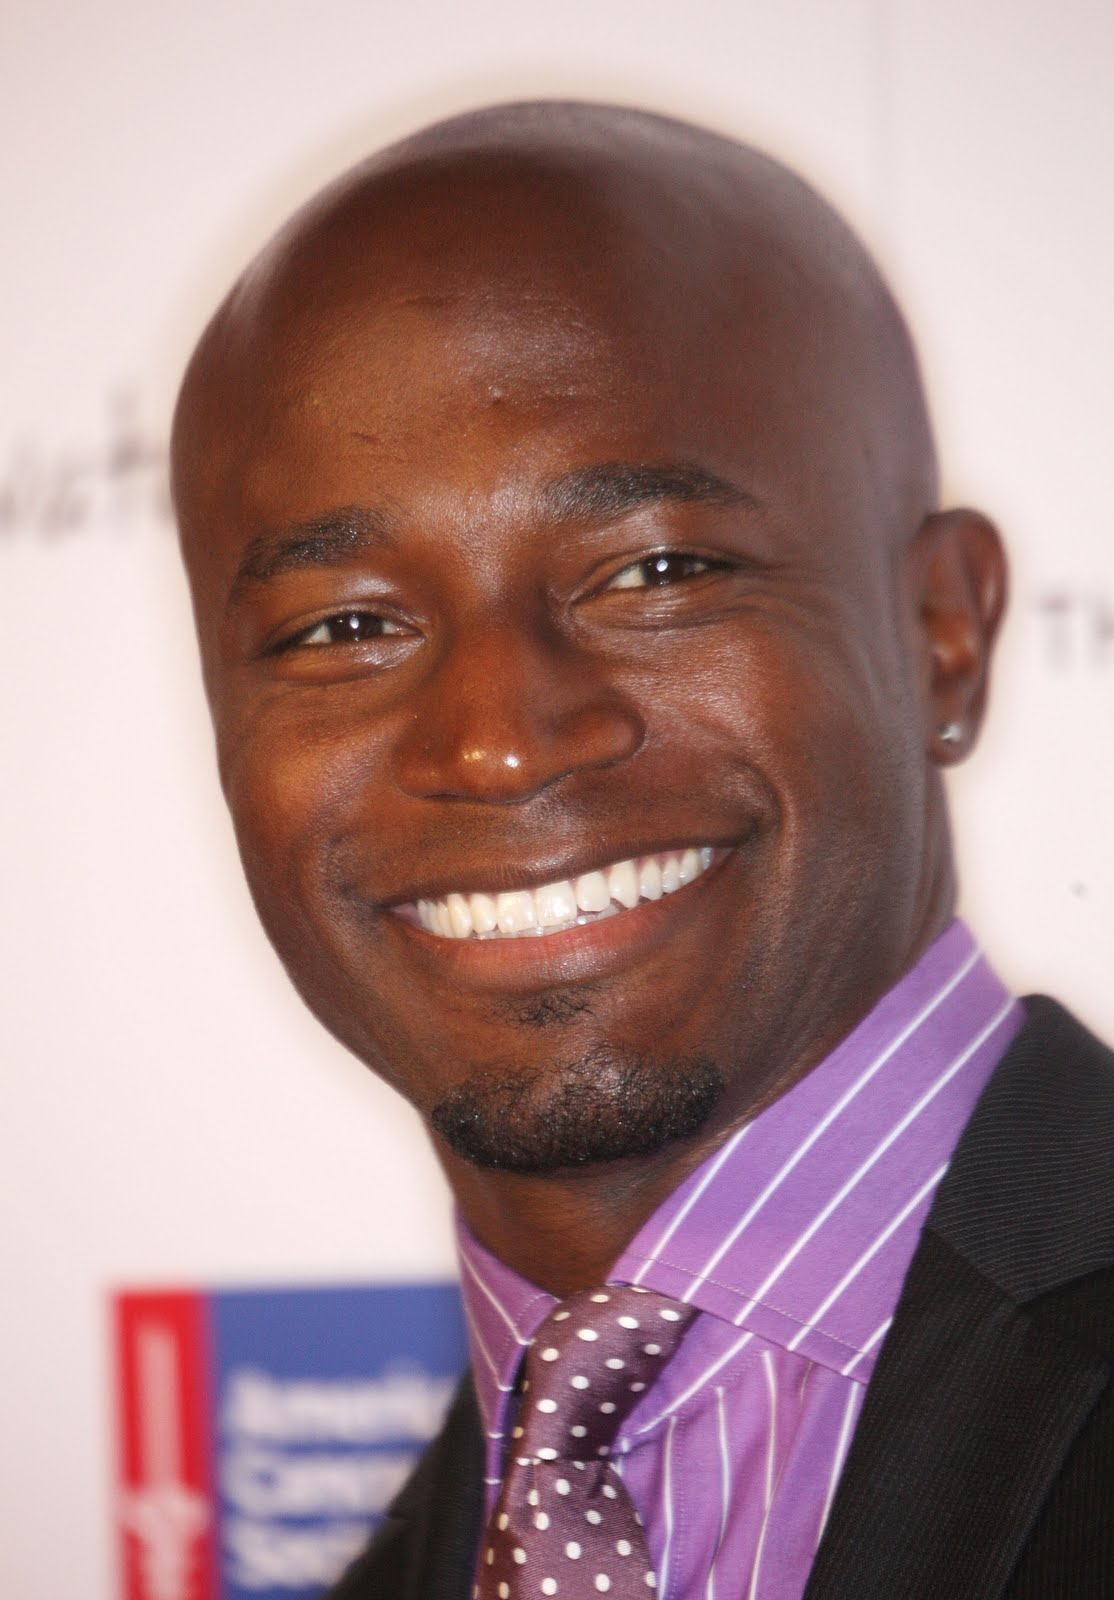 Taye Diggs Wallpapers Wallpaper Collections taye diggs wallpaper